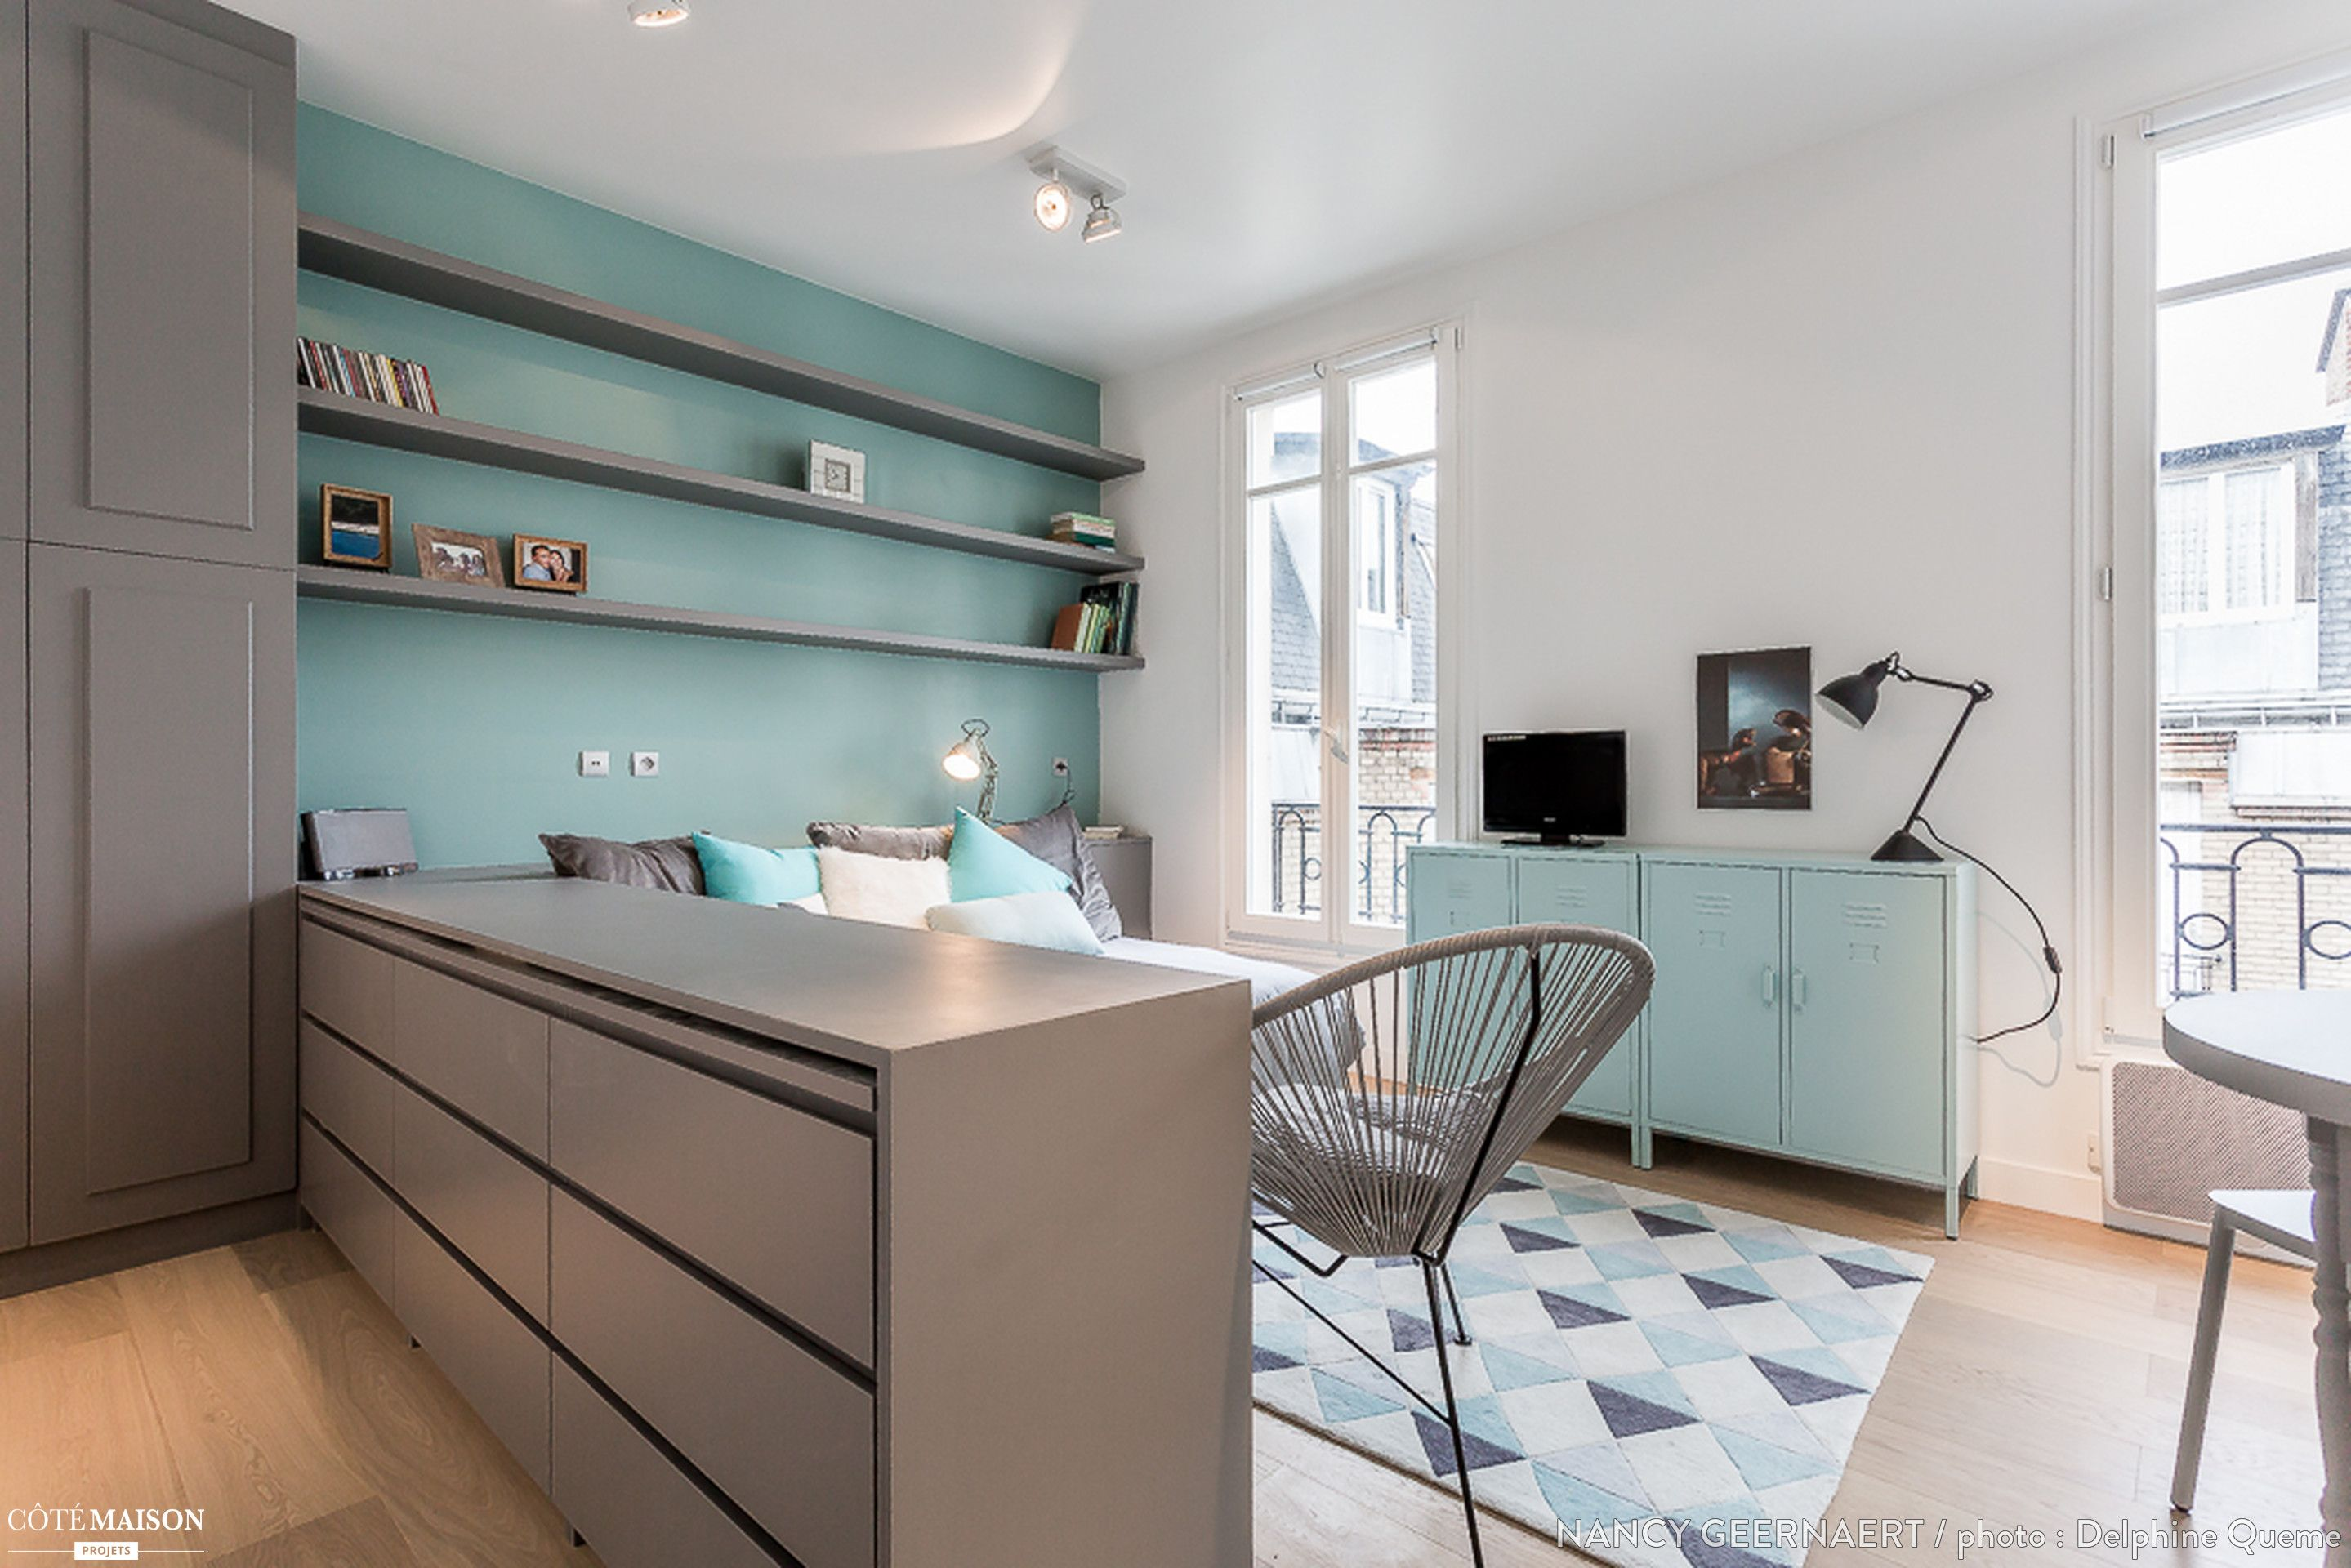 projet de r novation et d coration d 39 un studio de 20m2 dans le 8e arrondissement de paris avant. Black Bedroom Furniture Sets. Home Design Ideas